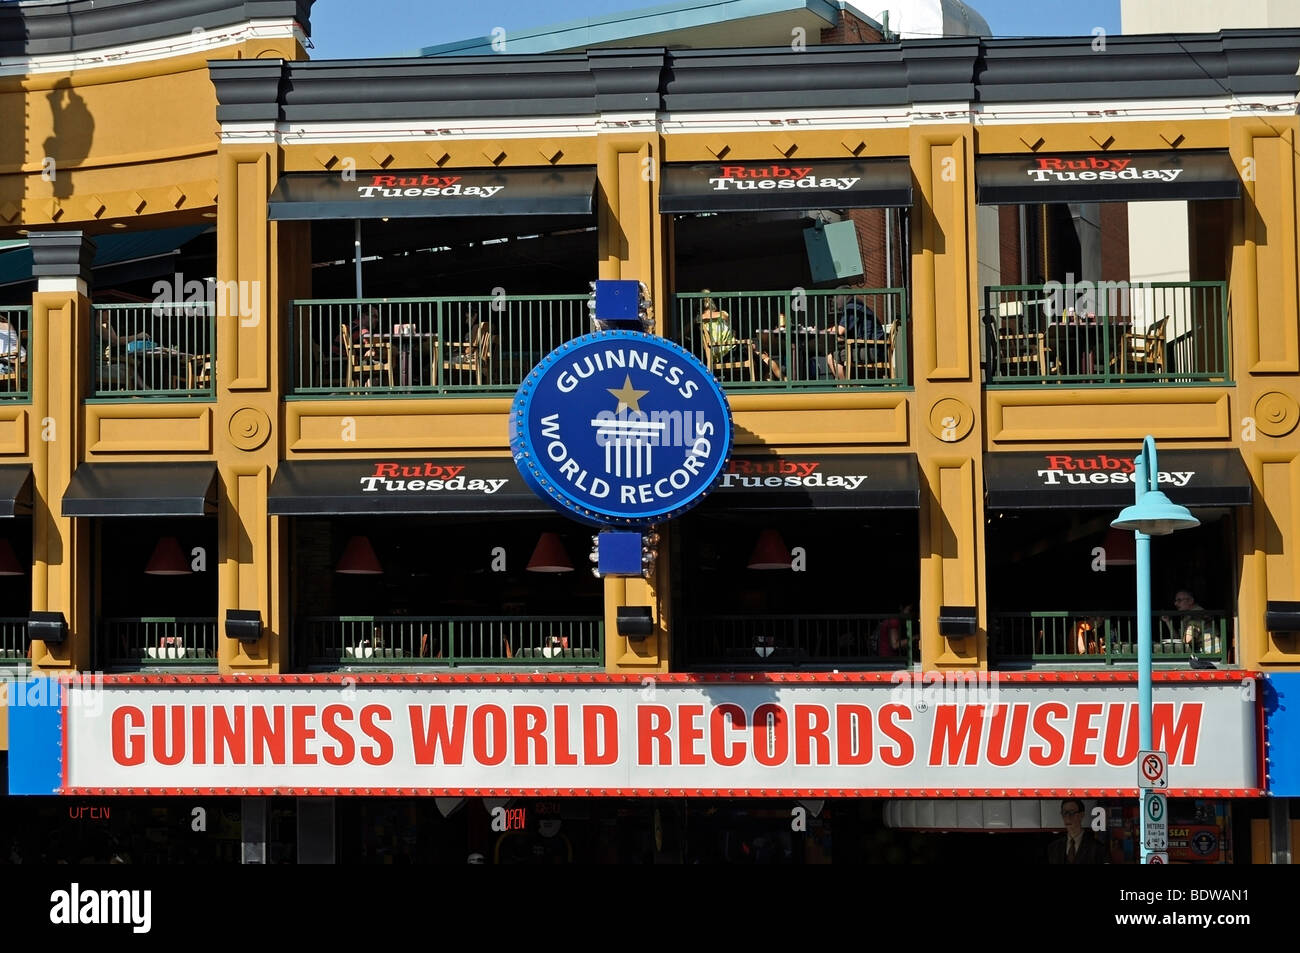 Guinness World Records Museum and Ruby Tuesday Restaurant - Attractions on Clifton Hill, Niagara, Canada - Stock Image